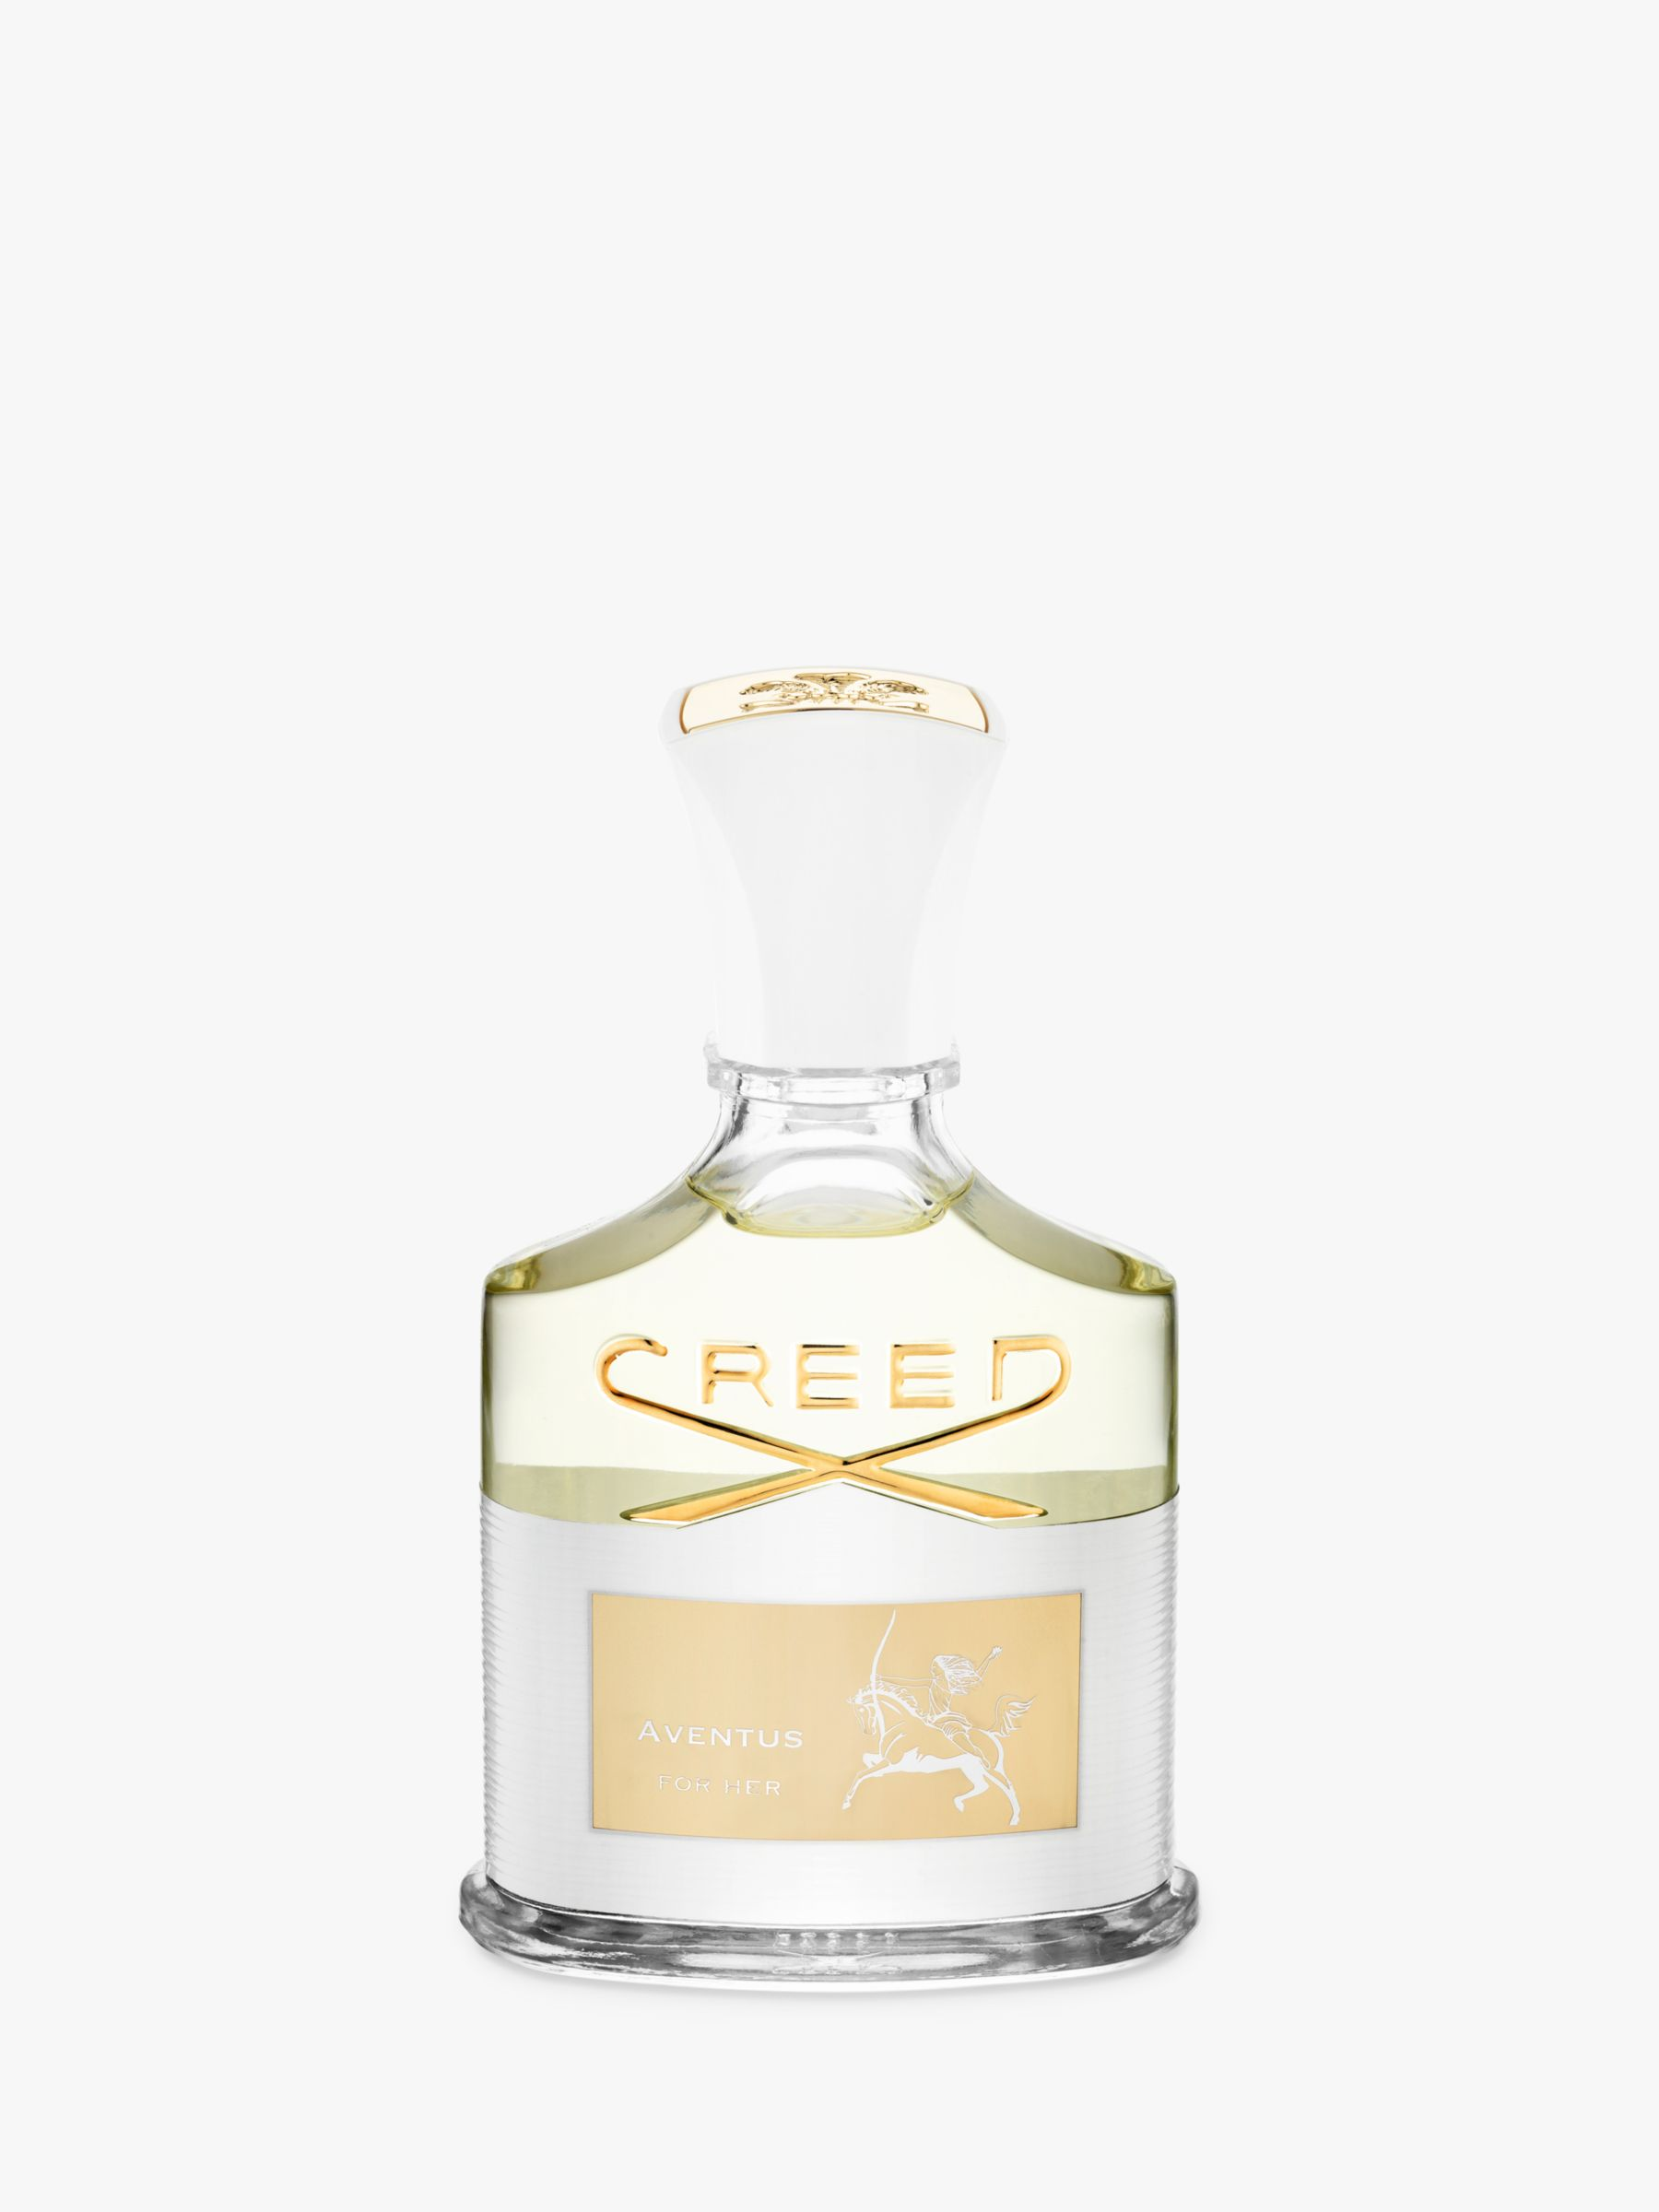 Creed CREED Aventus For Her Eau de Parfum, 75ml